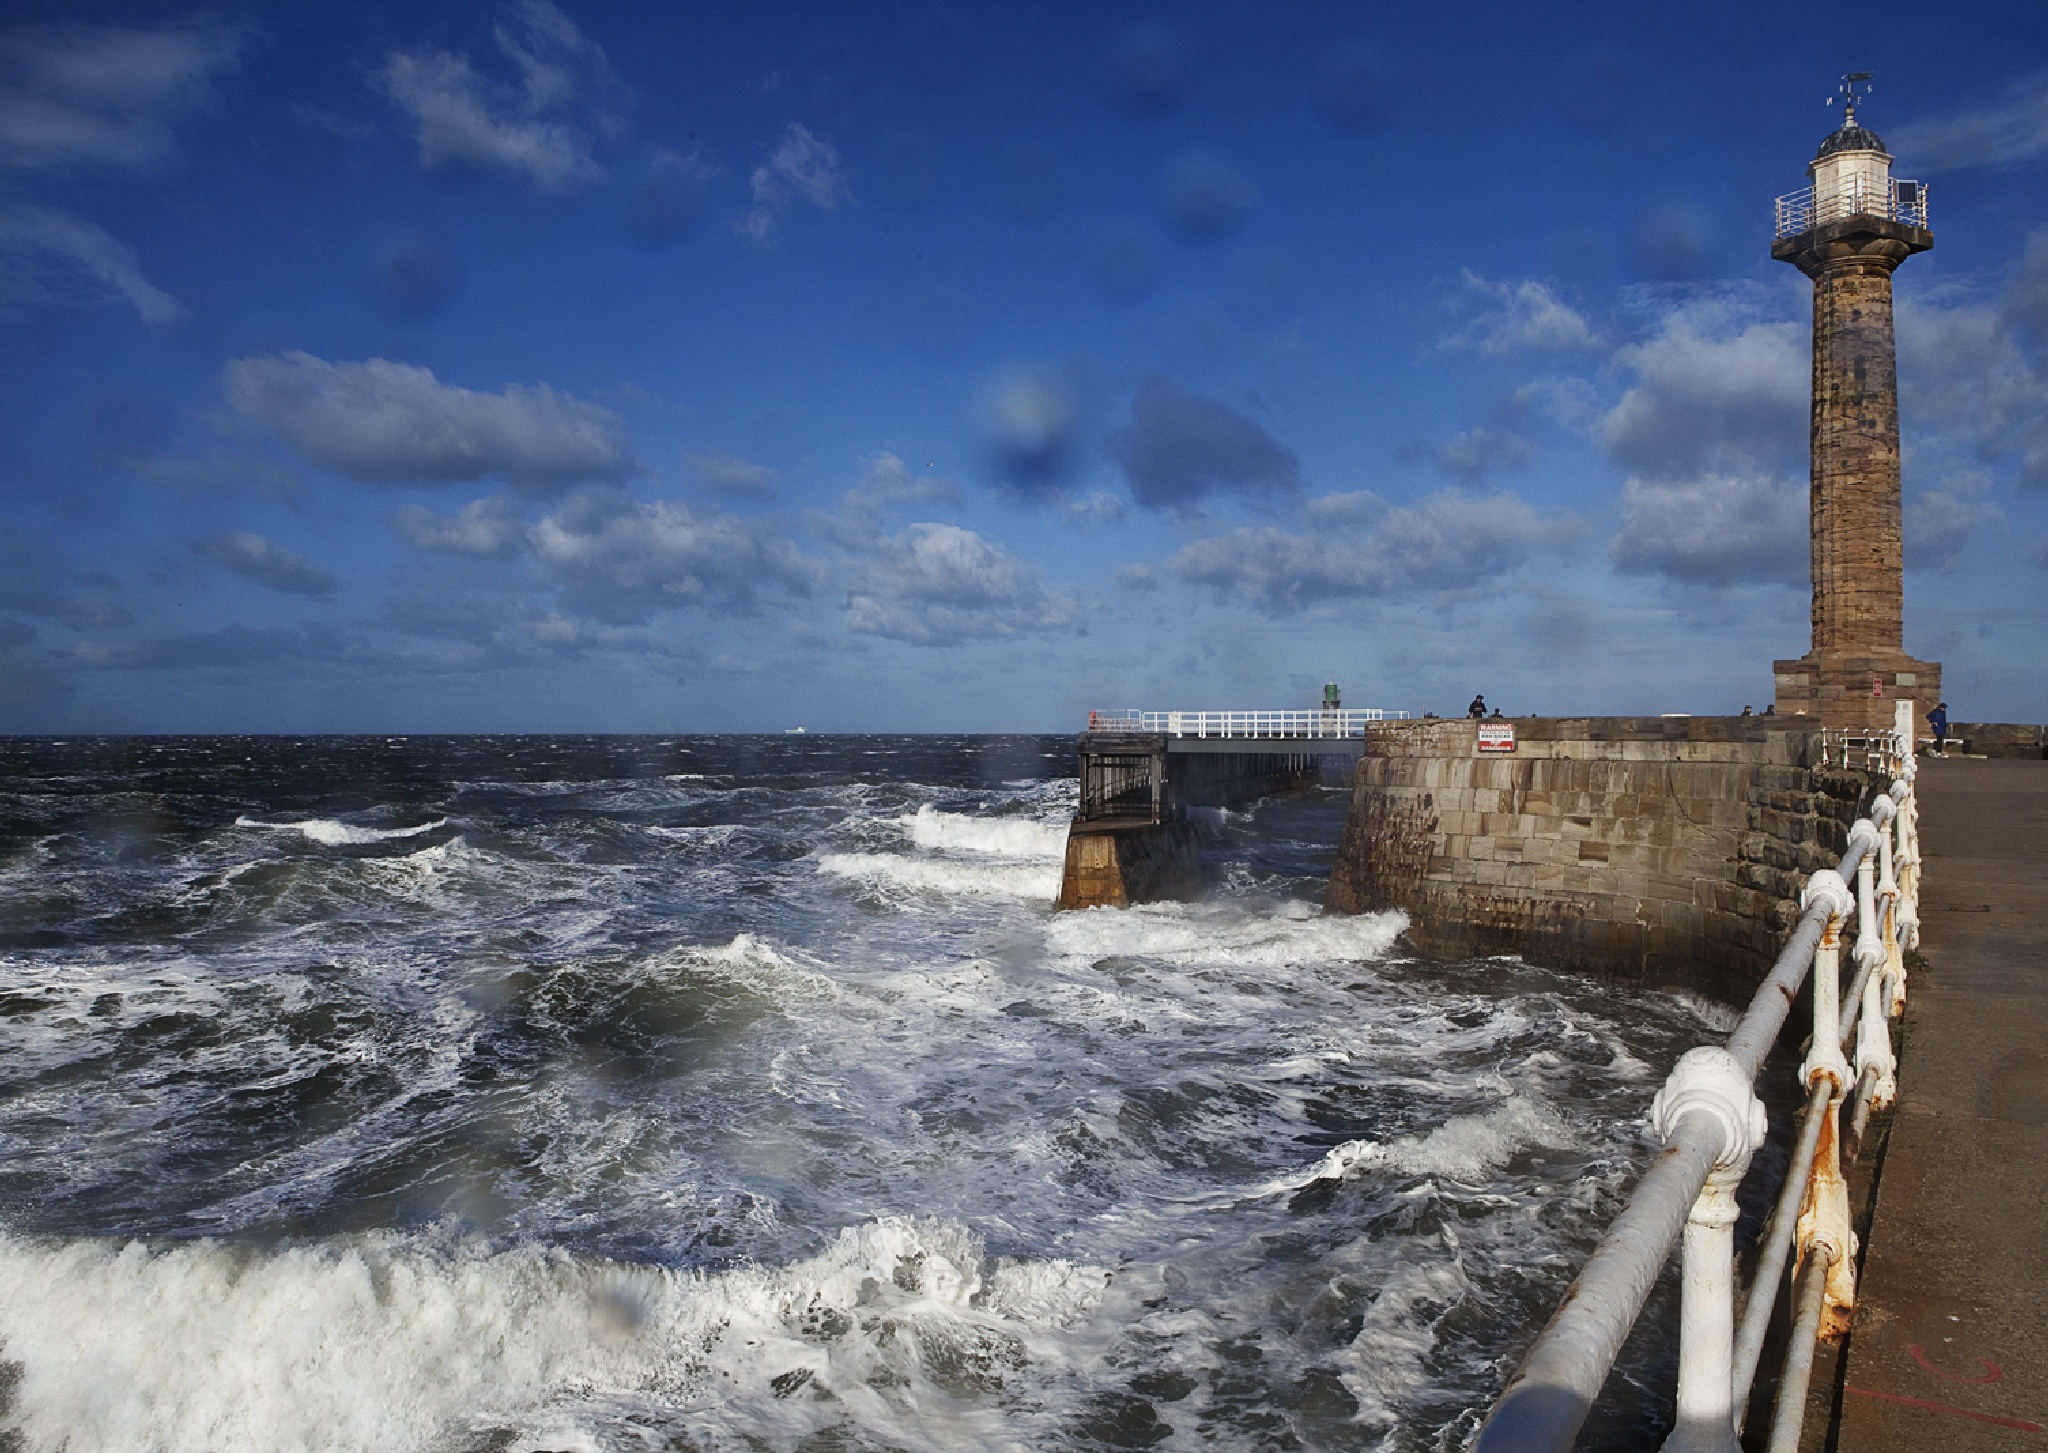 Windy Day in Whitby by JaneCampbell21